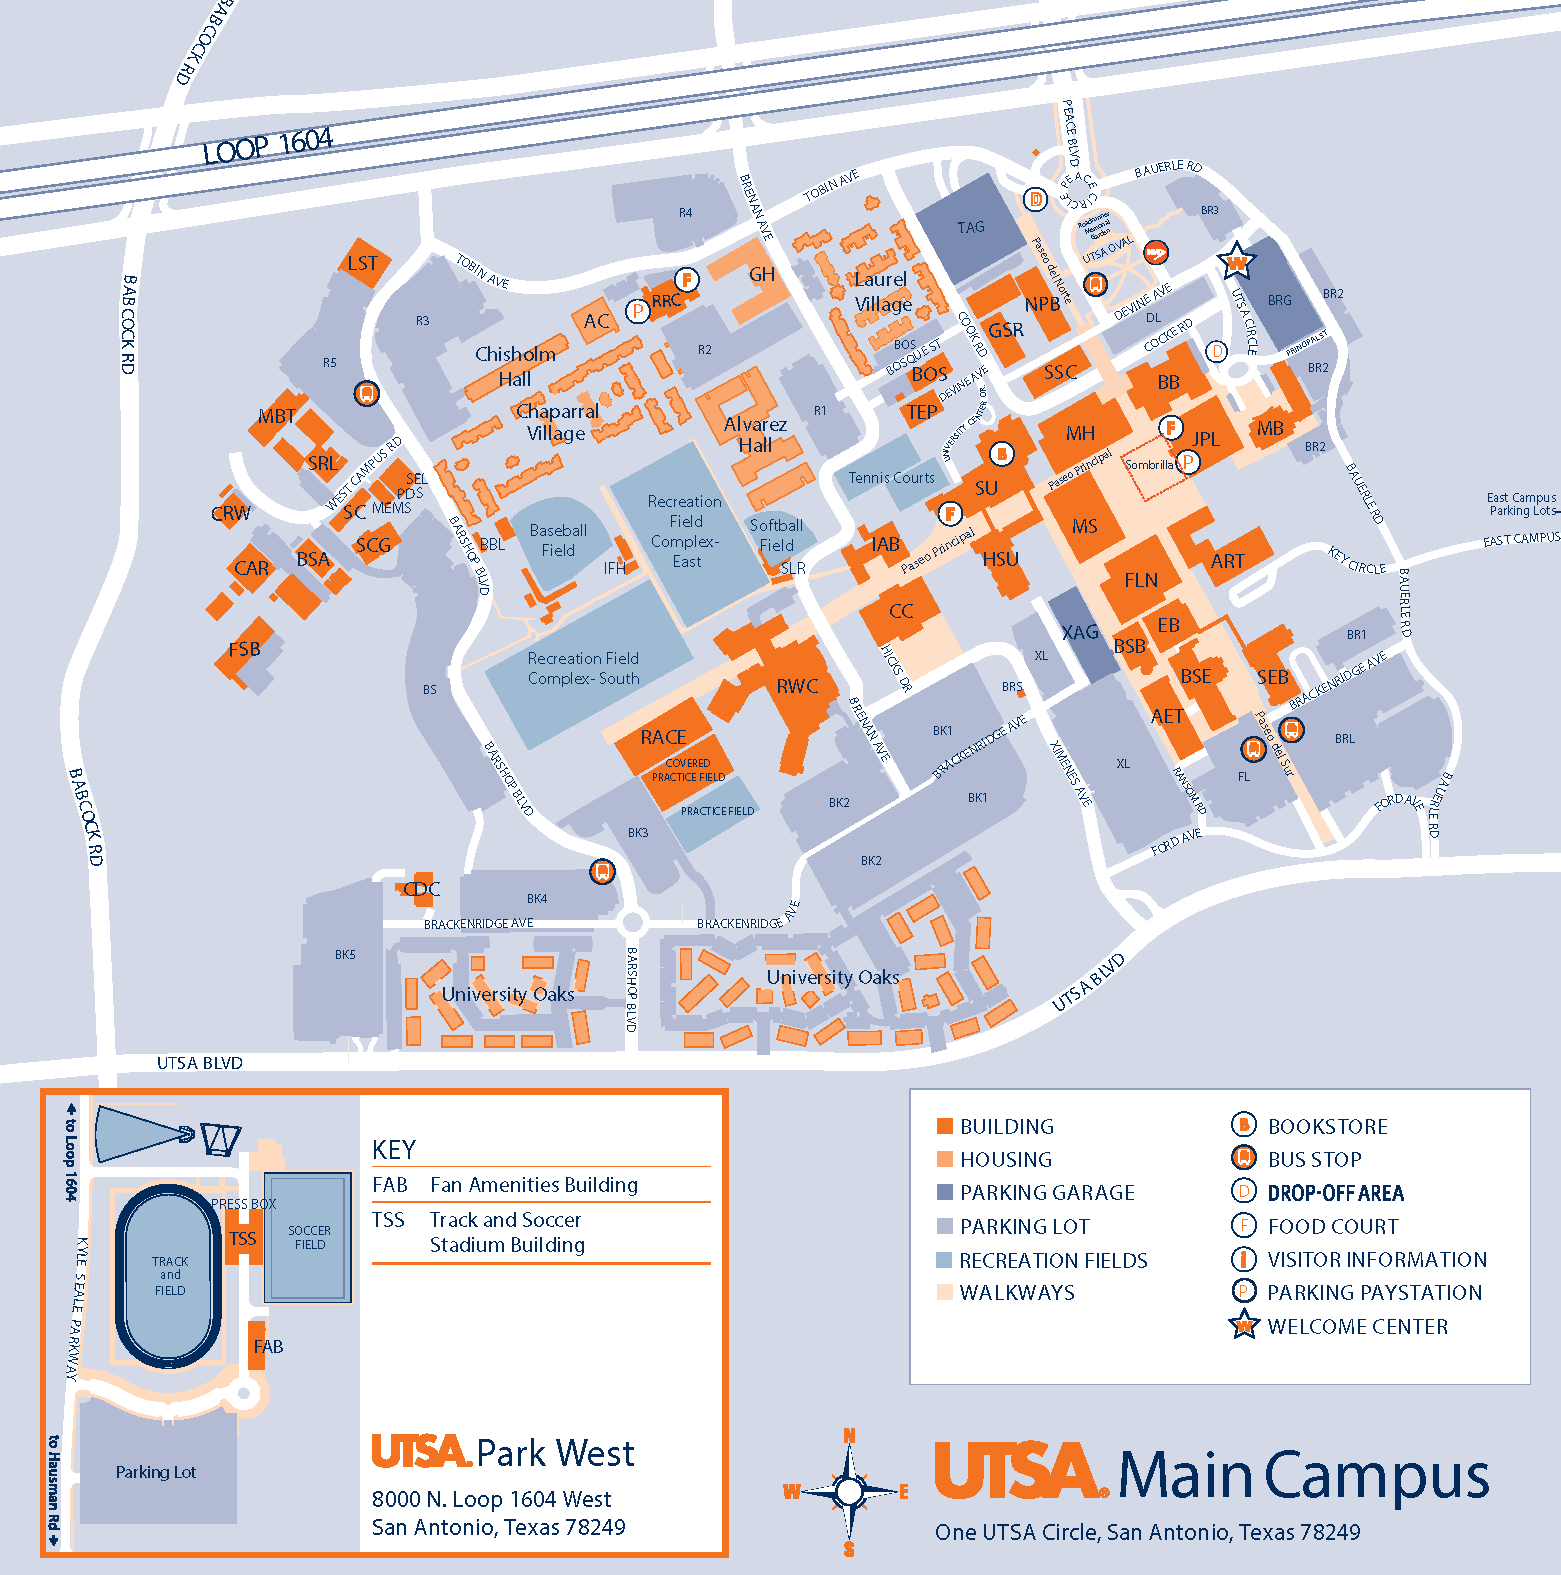 Map Of Texas San Antonio.Main Campus Utsa University Of Texas At San Antonio